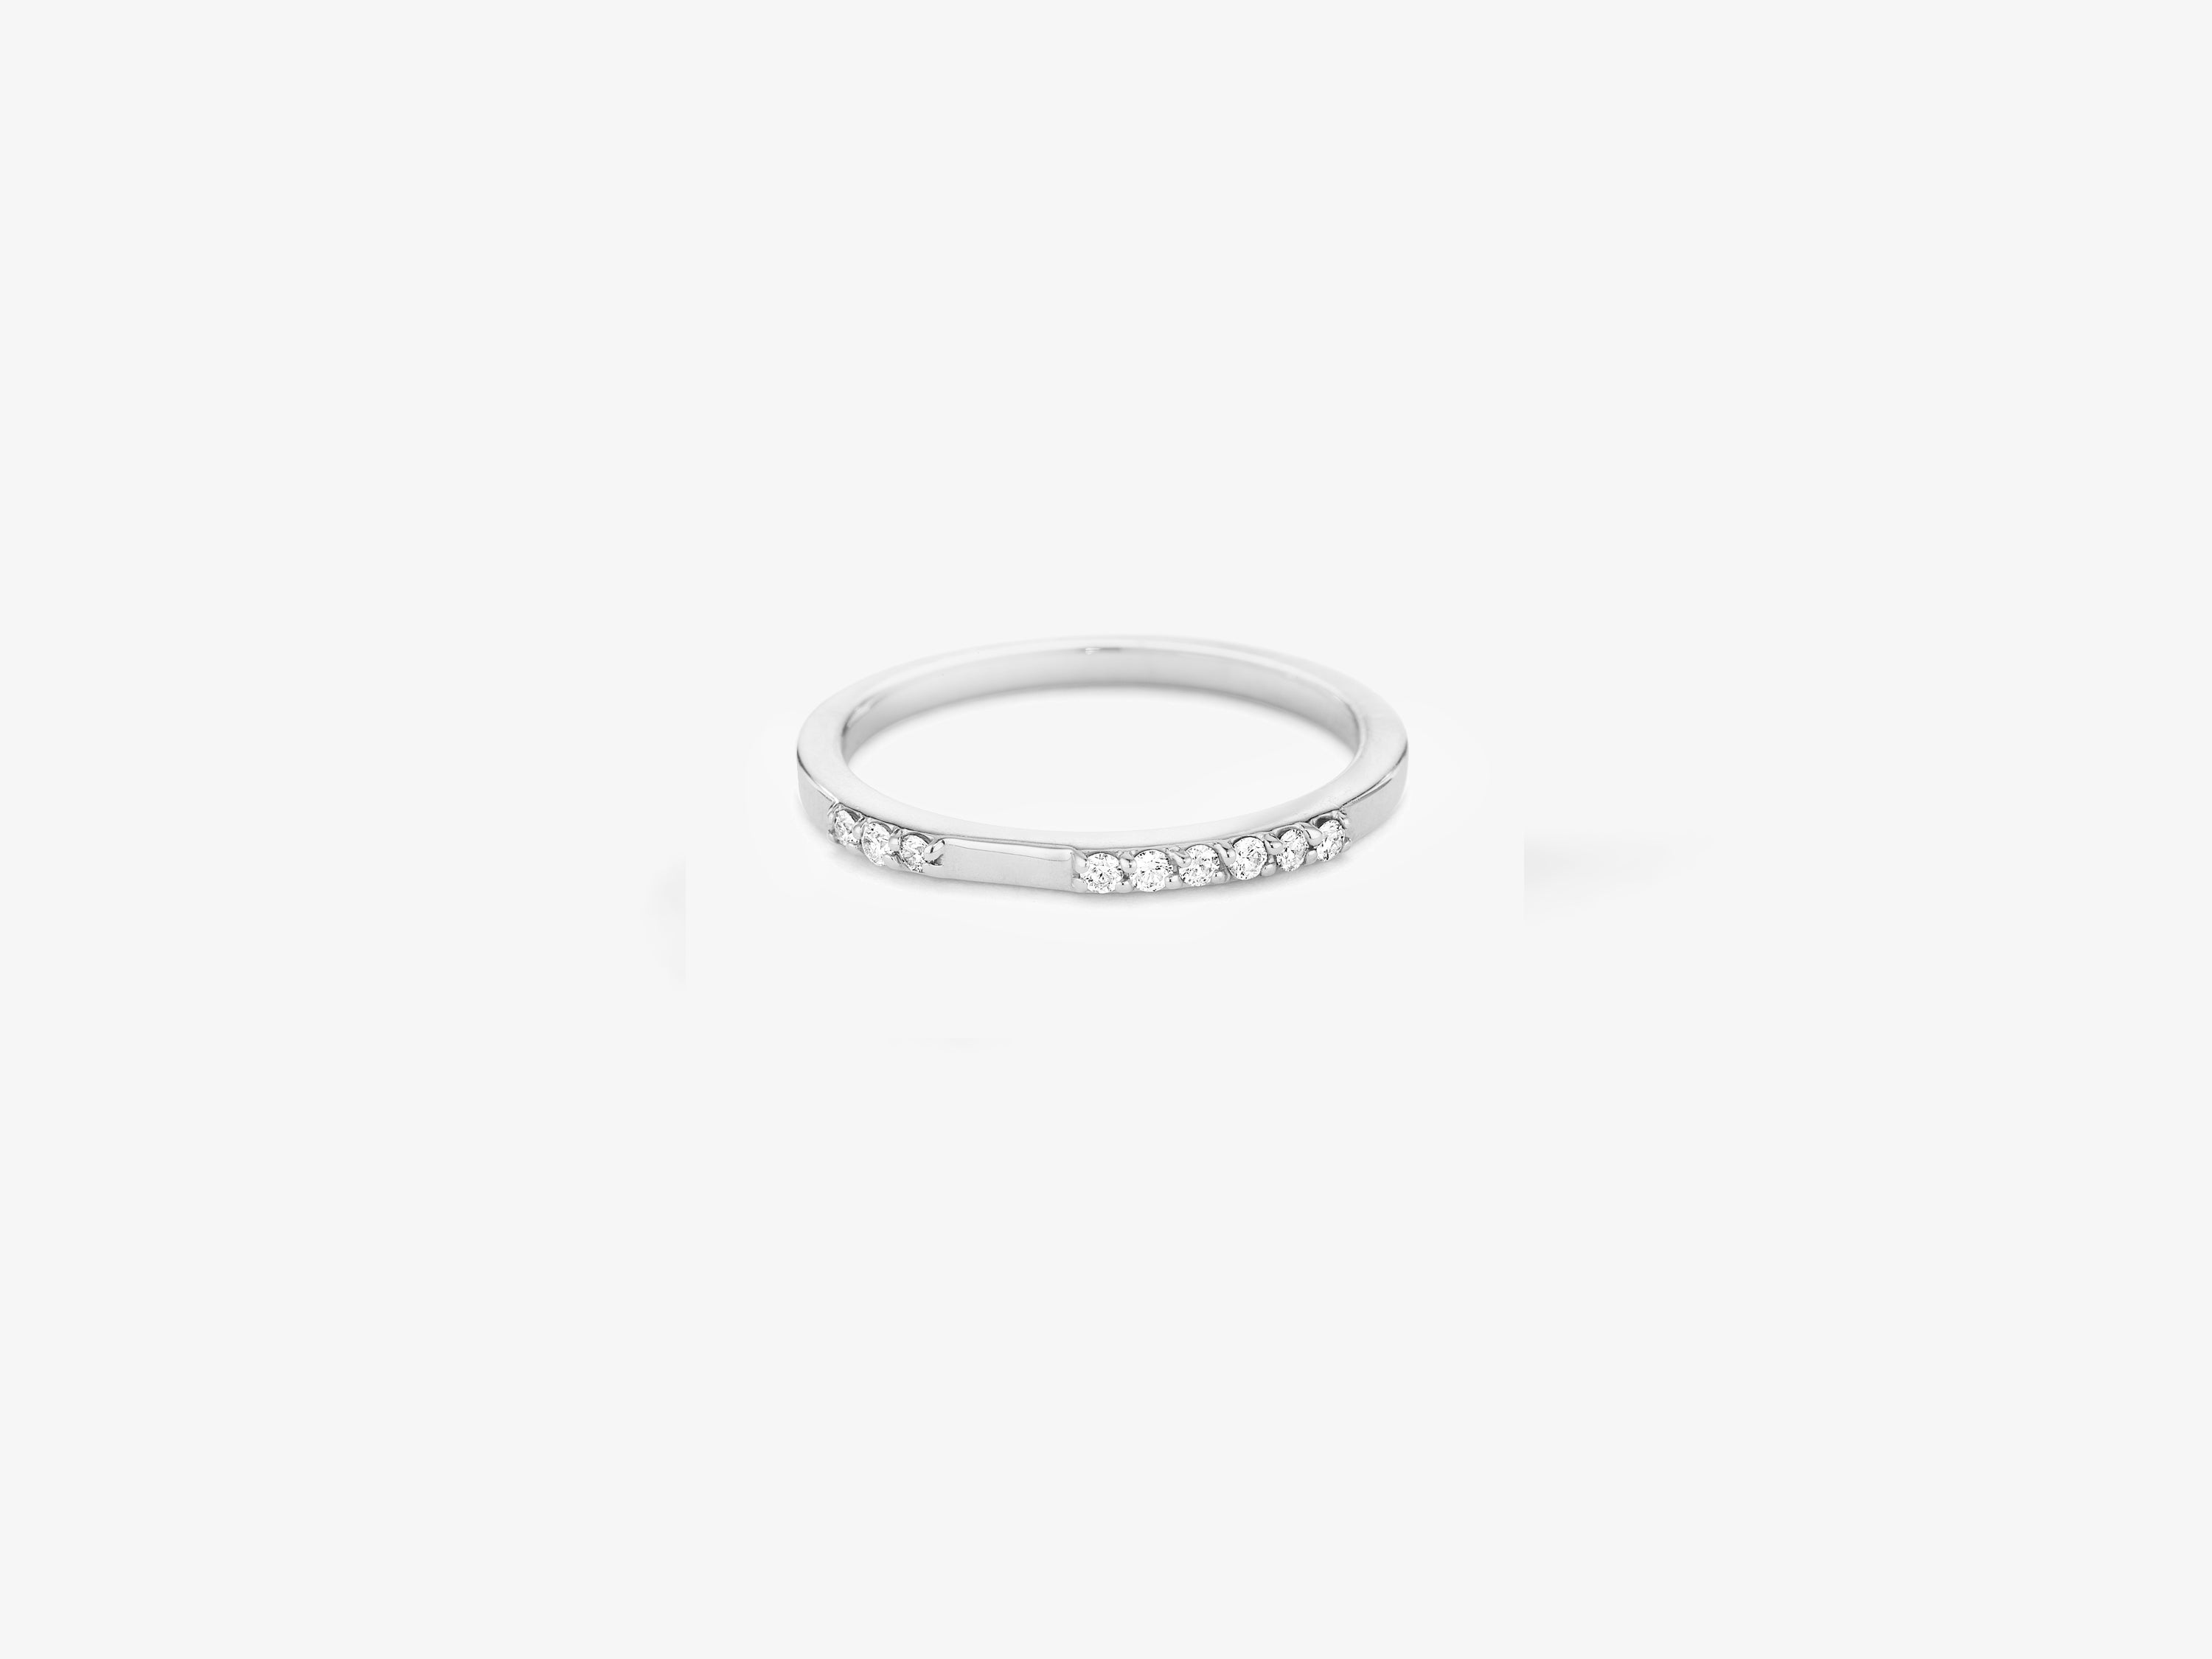 Single Band Ring with Sprinkle of Diamonds Pave